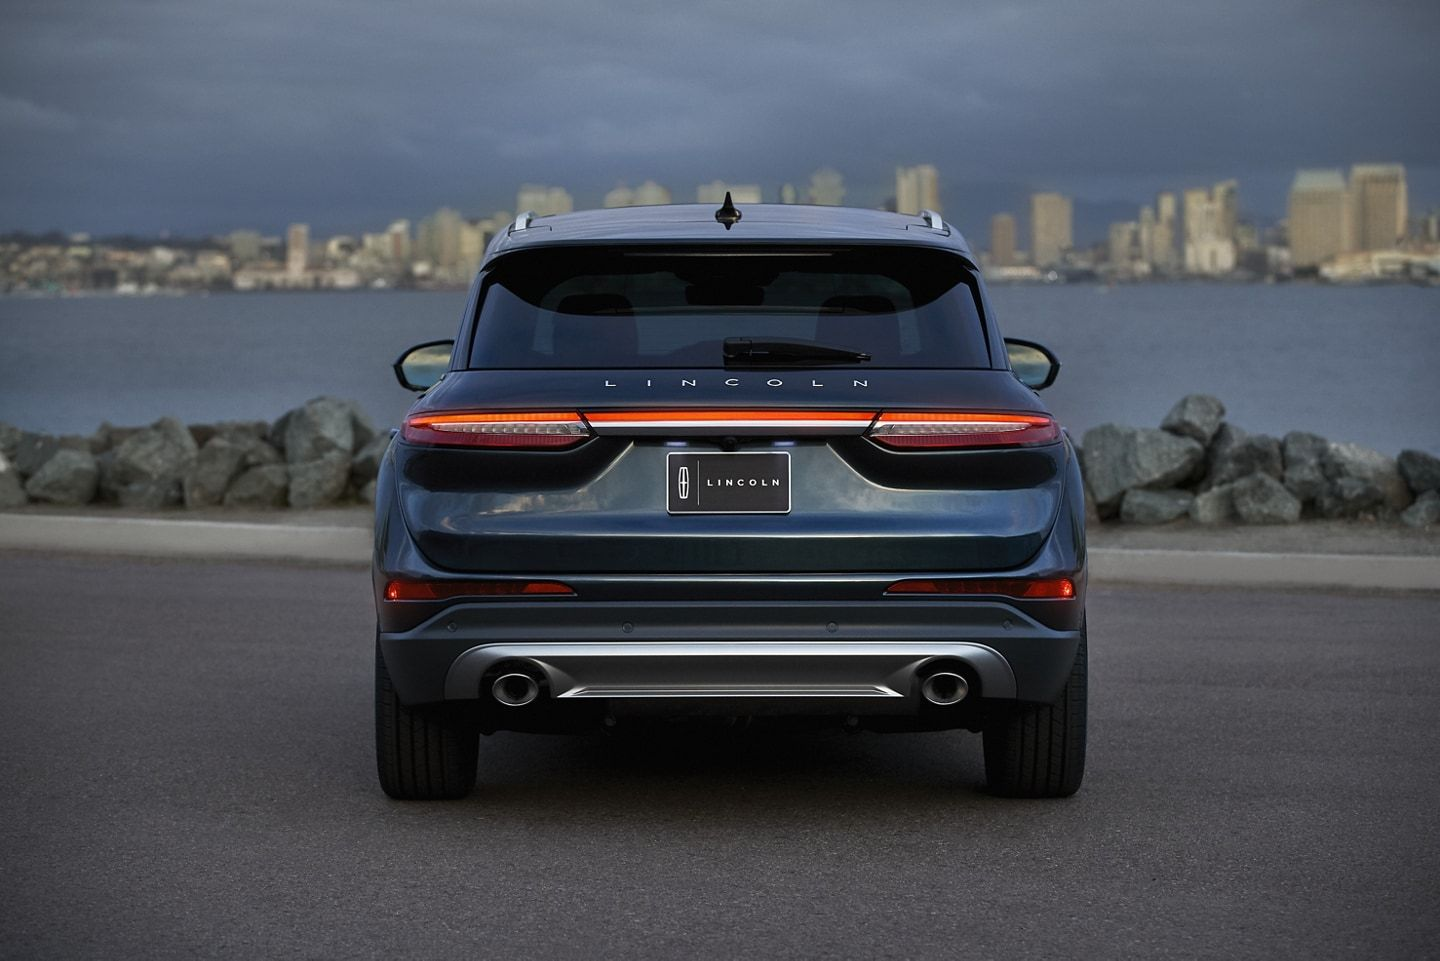 All-Electric Lincoln Corsair SUV To Reportedly Make Debut In 2026